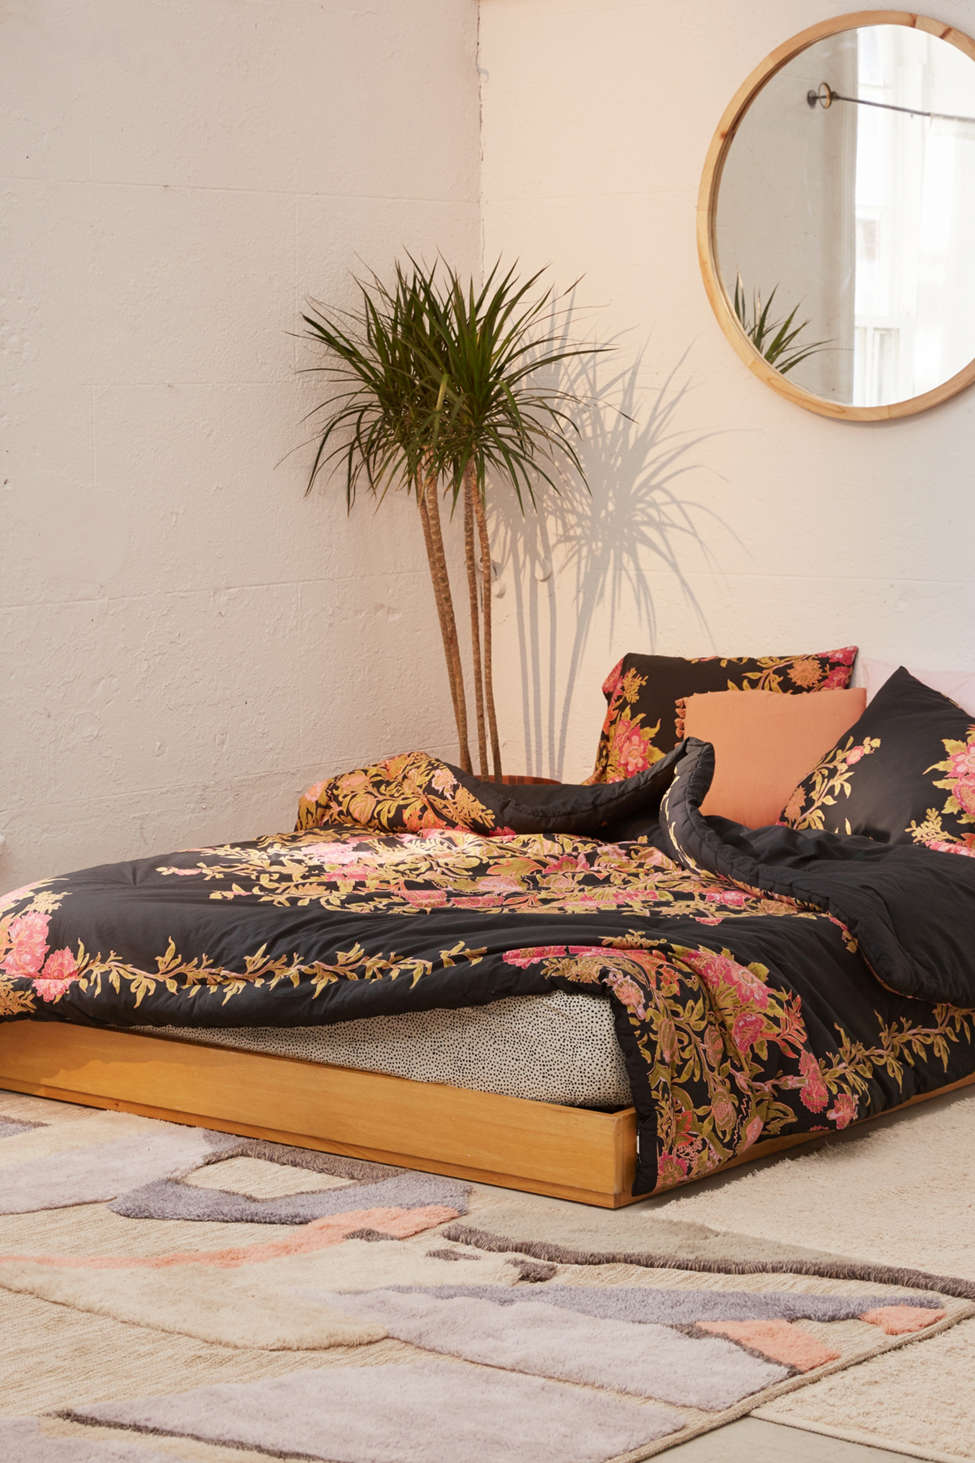 Slide View: 2: Analise Floral Medallion Comforter Snooze Set